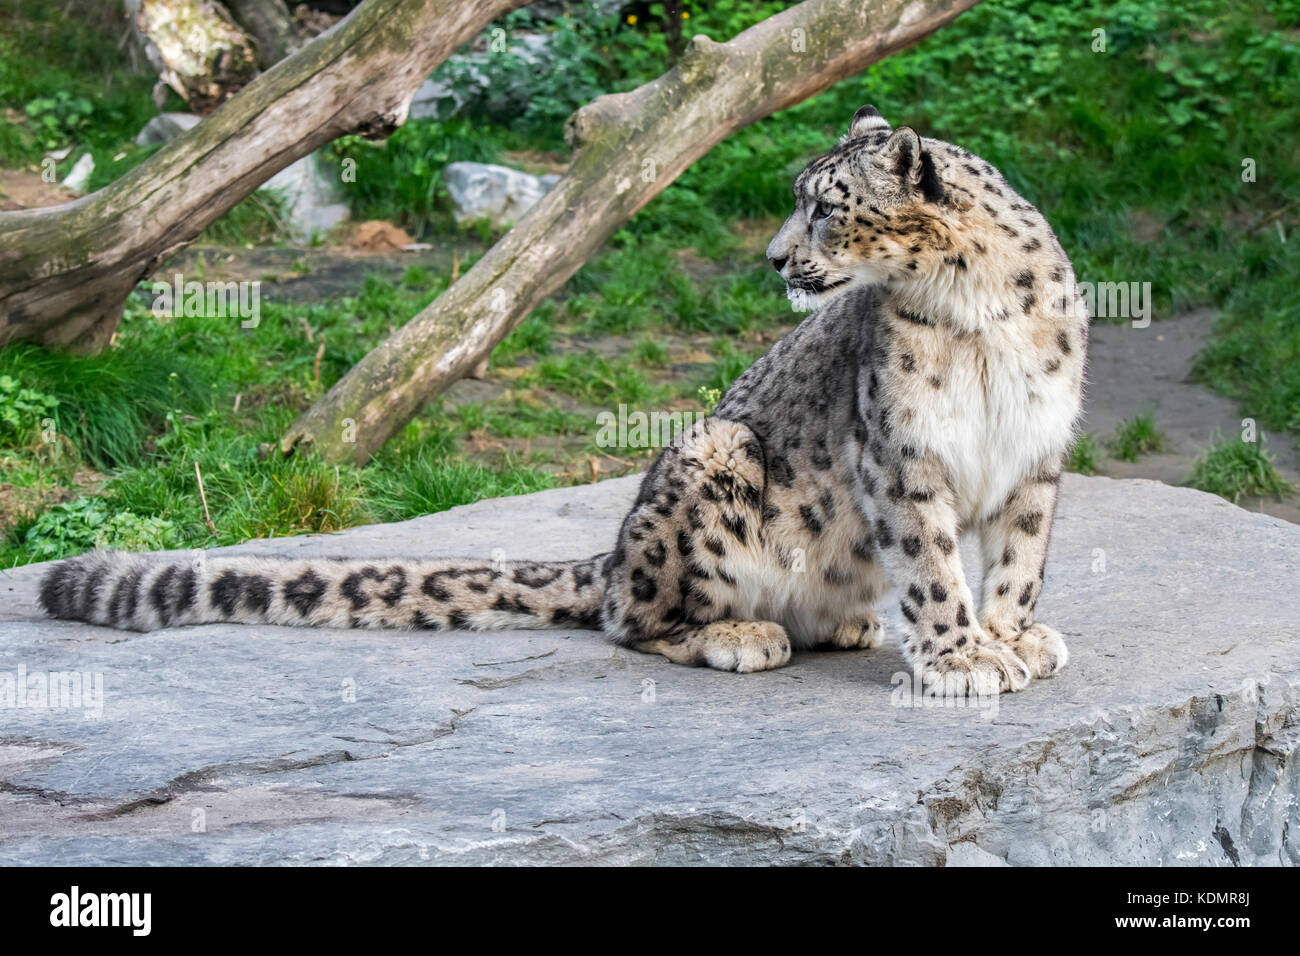 Snow leopard / ounce (Panthera uncia / Uncia uncia) sitting on rock looking backwards, native to the mountain ranges - Stock Image